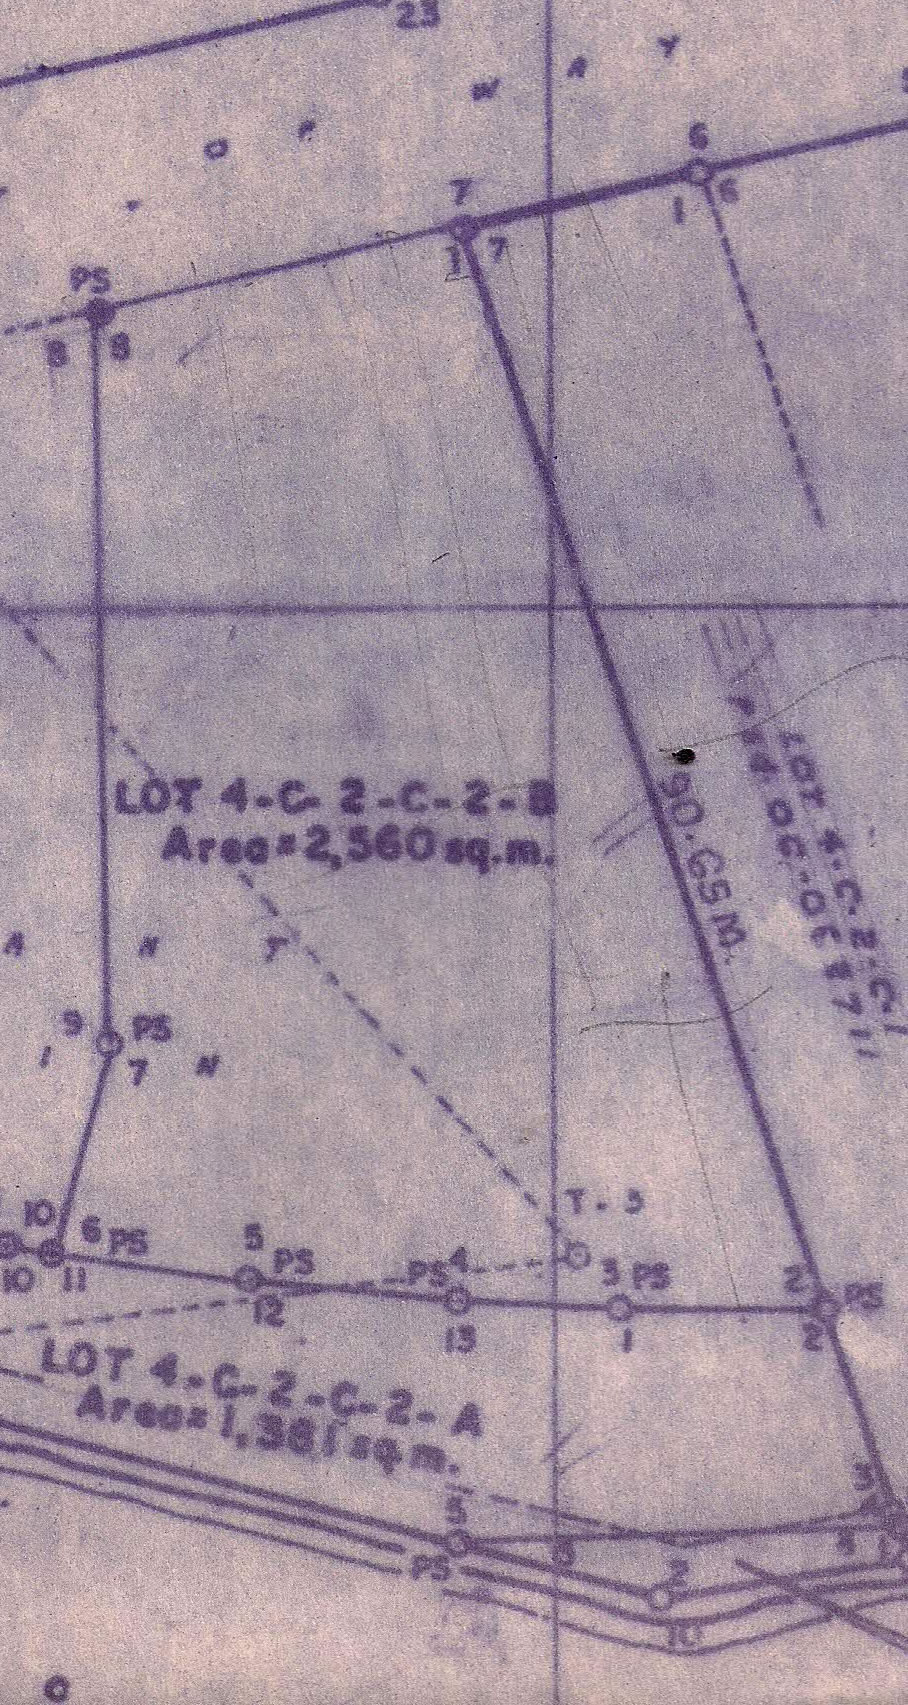 Property Lines for 2,560 sq. meter lot